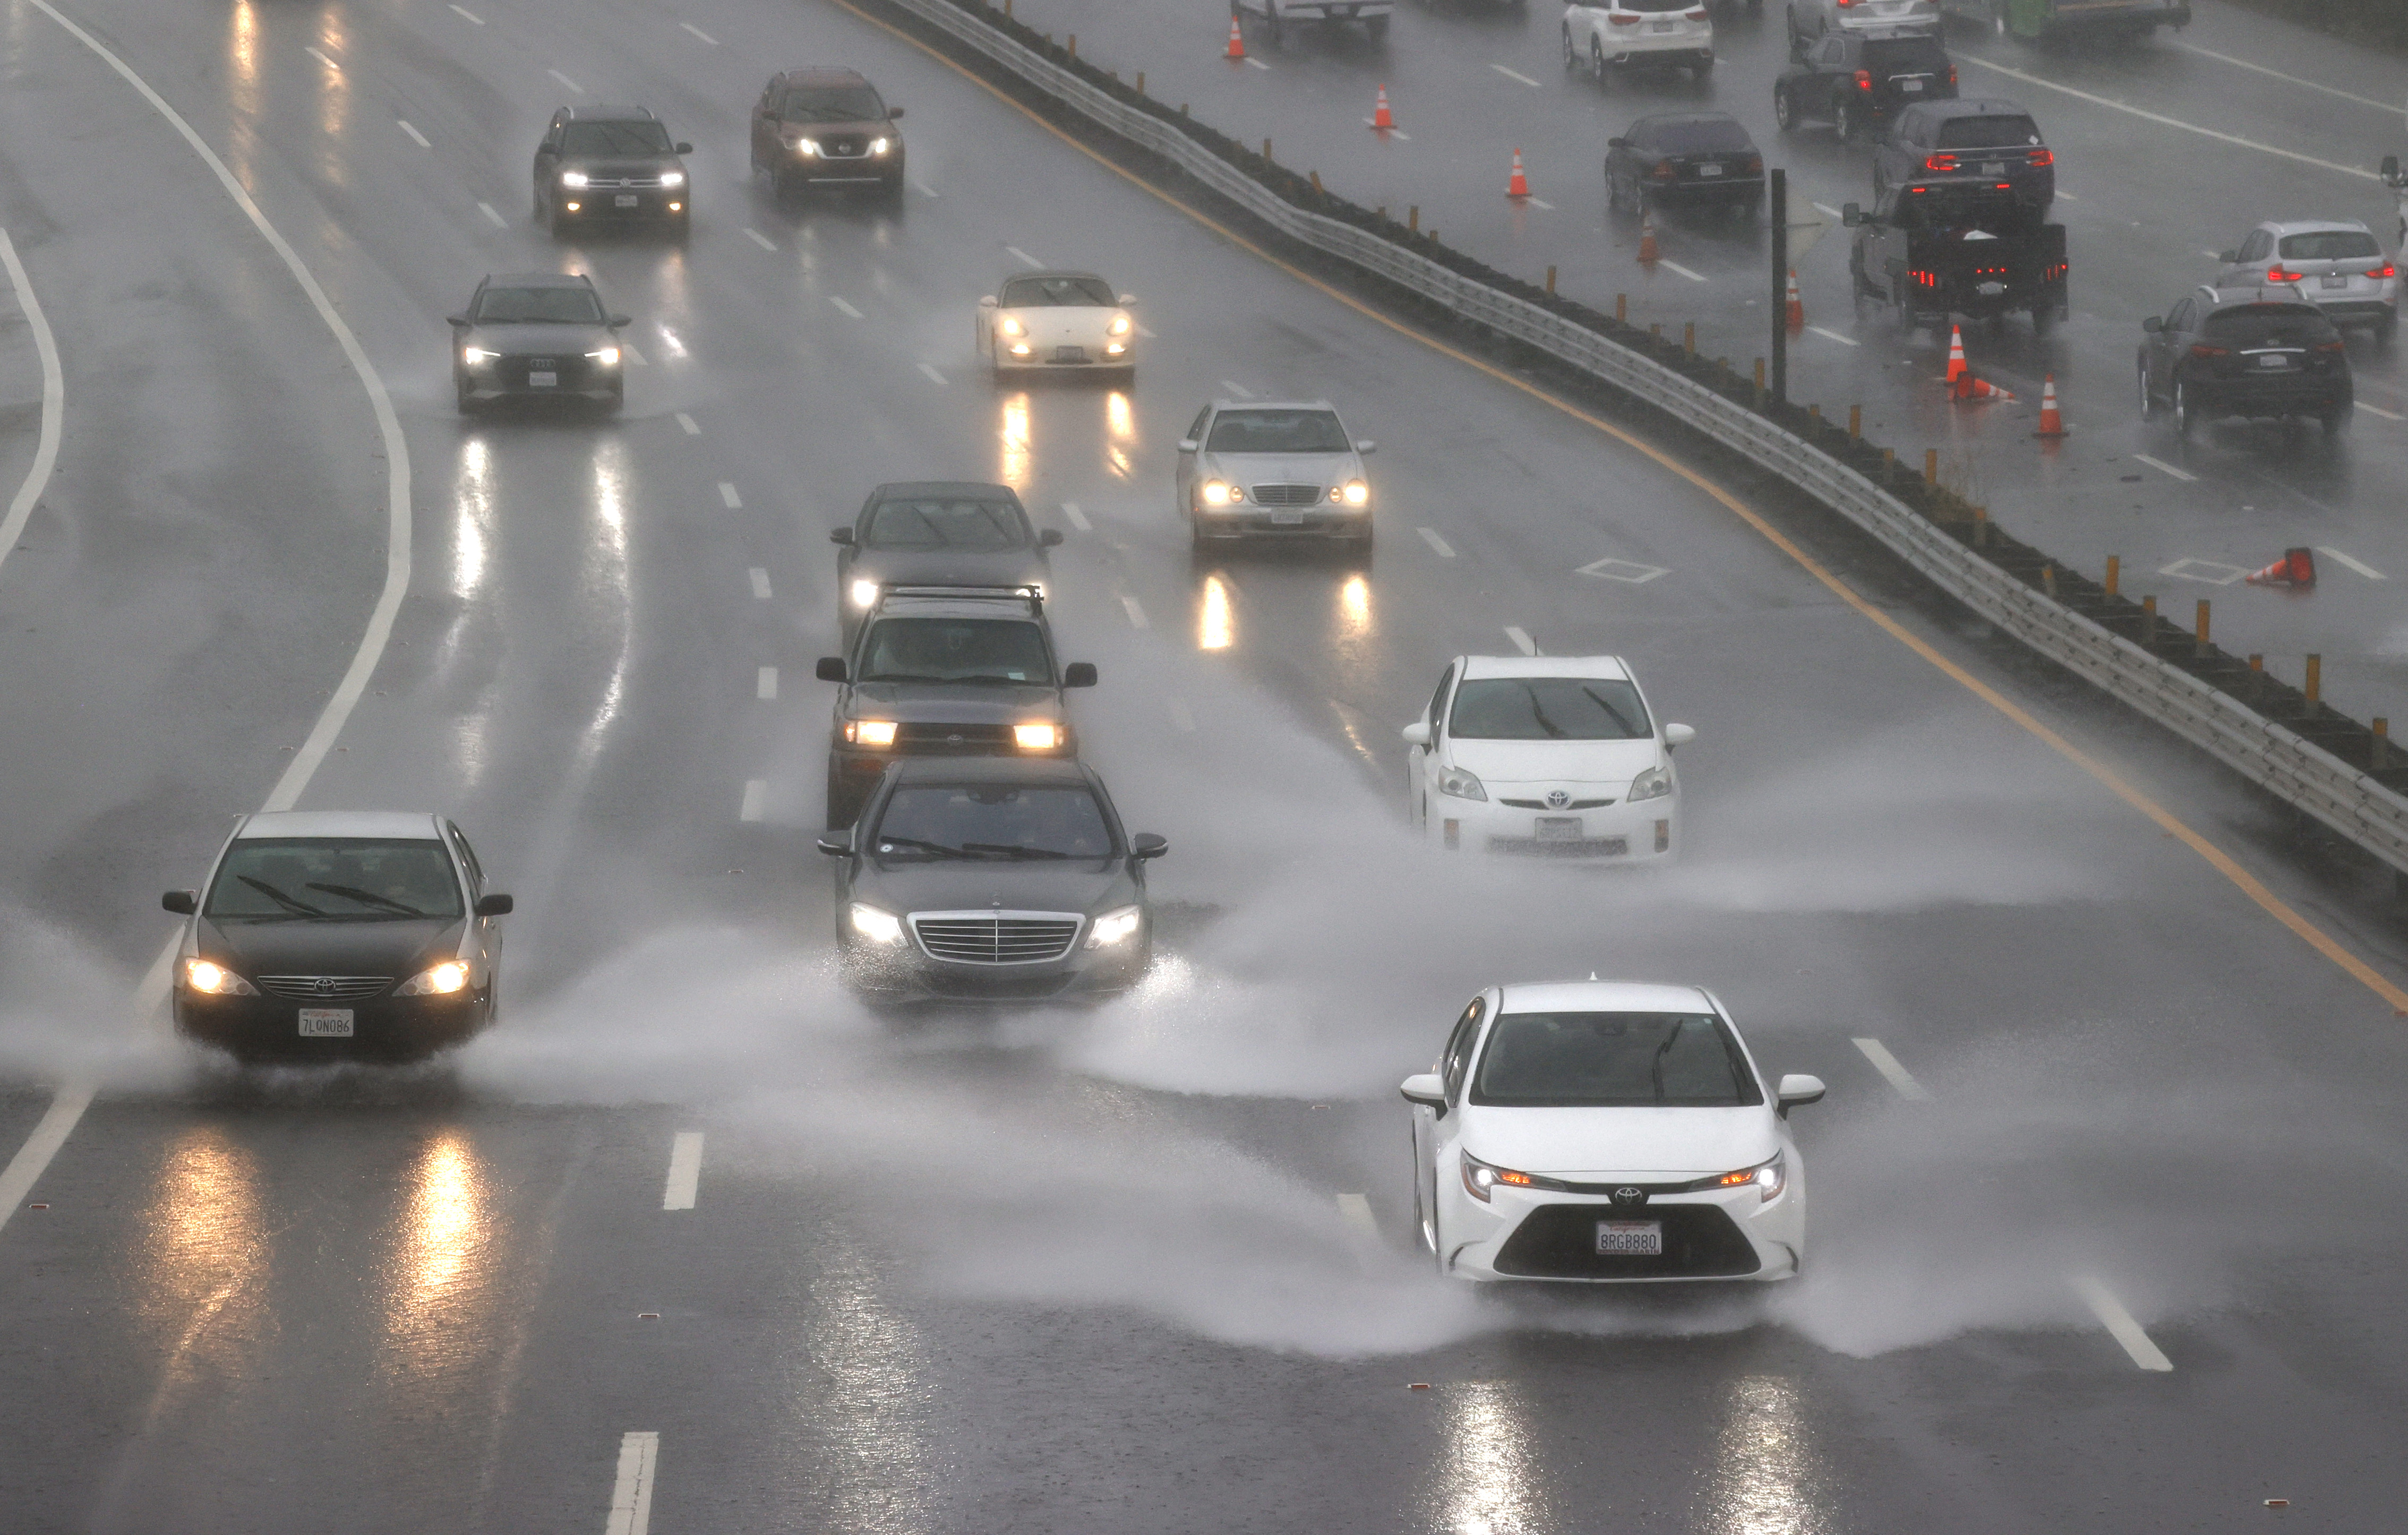 Cars driving on a freeway in an intense rainstorm.